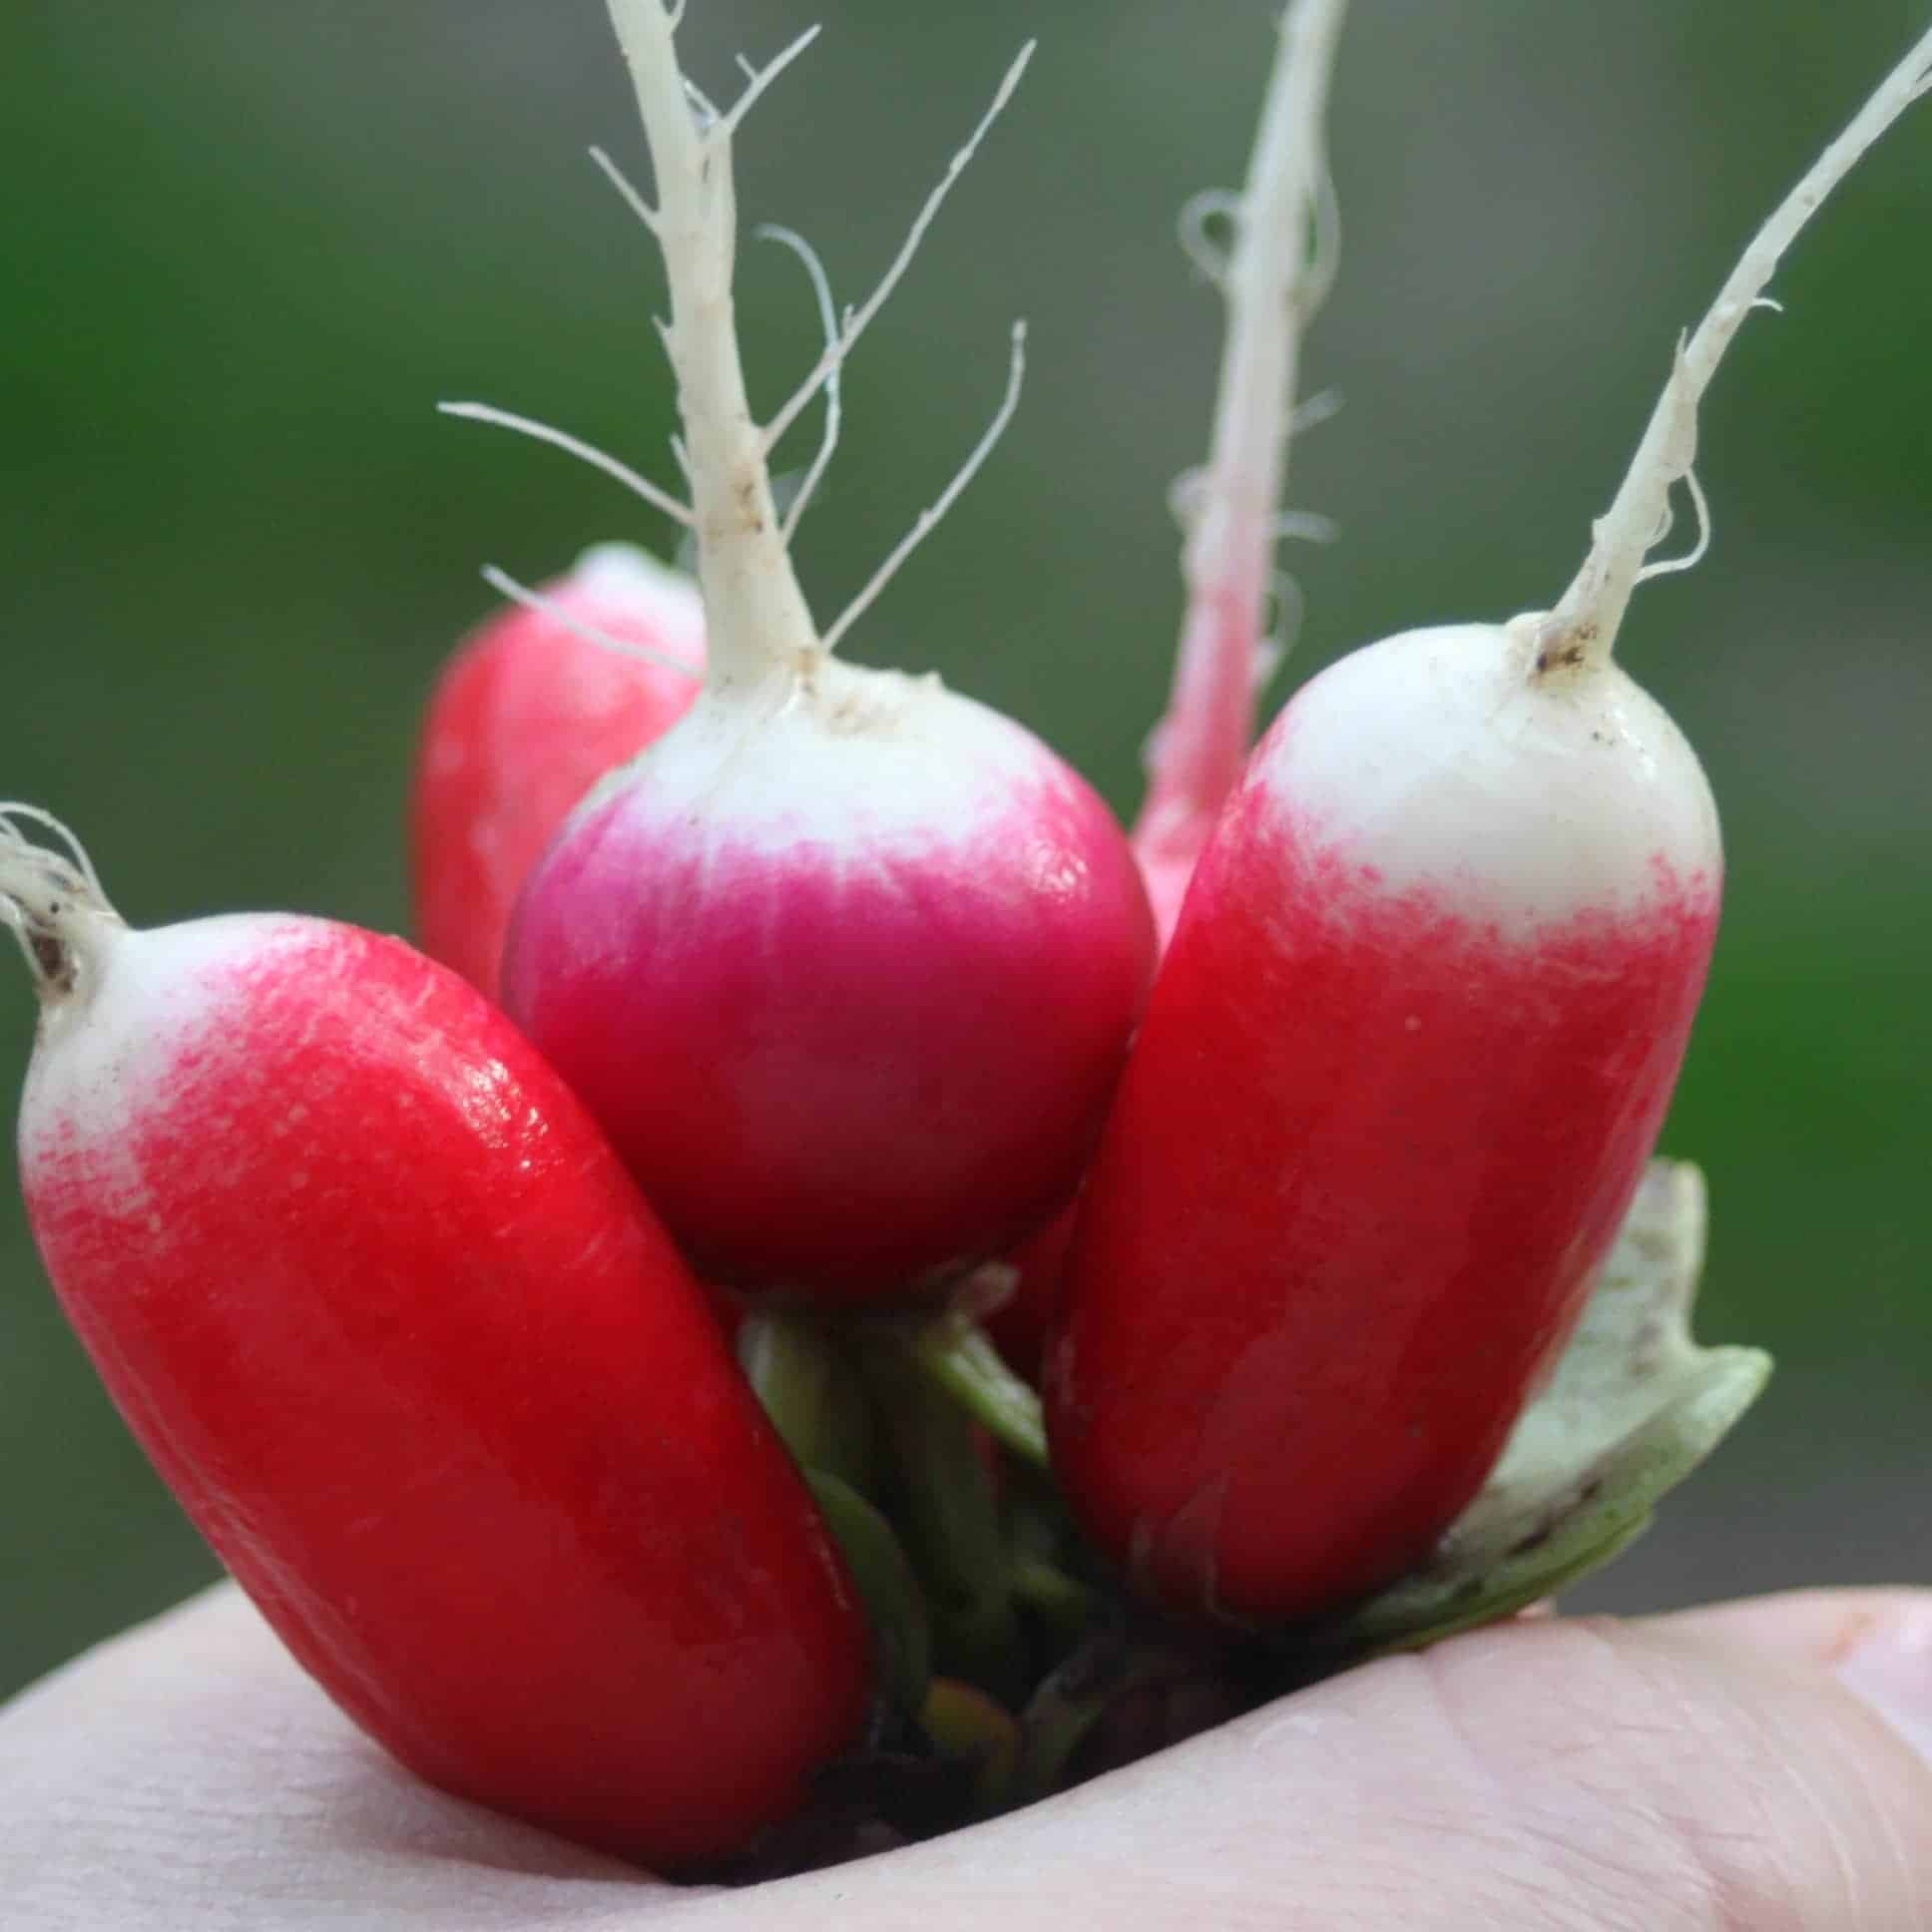 Gardeners and cooks alike can find an easy and tasty win by growing and using radishes. Make the most of this early & easy to crop for gardens of all sizes.